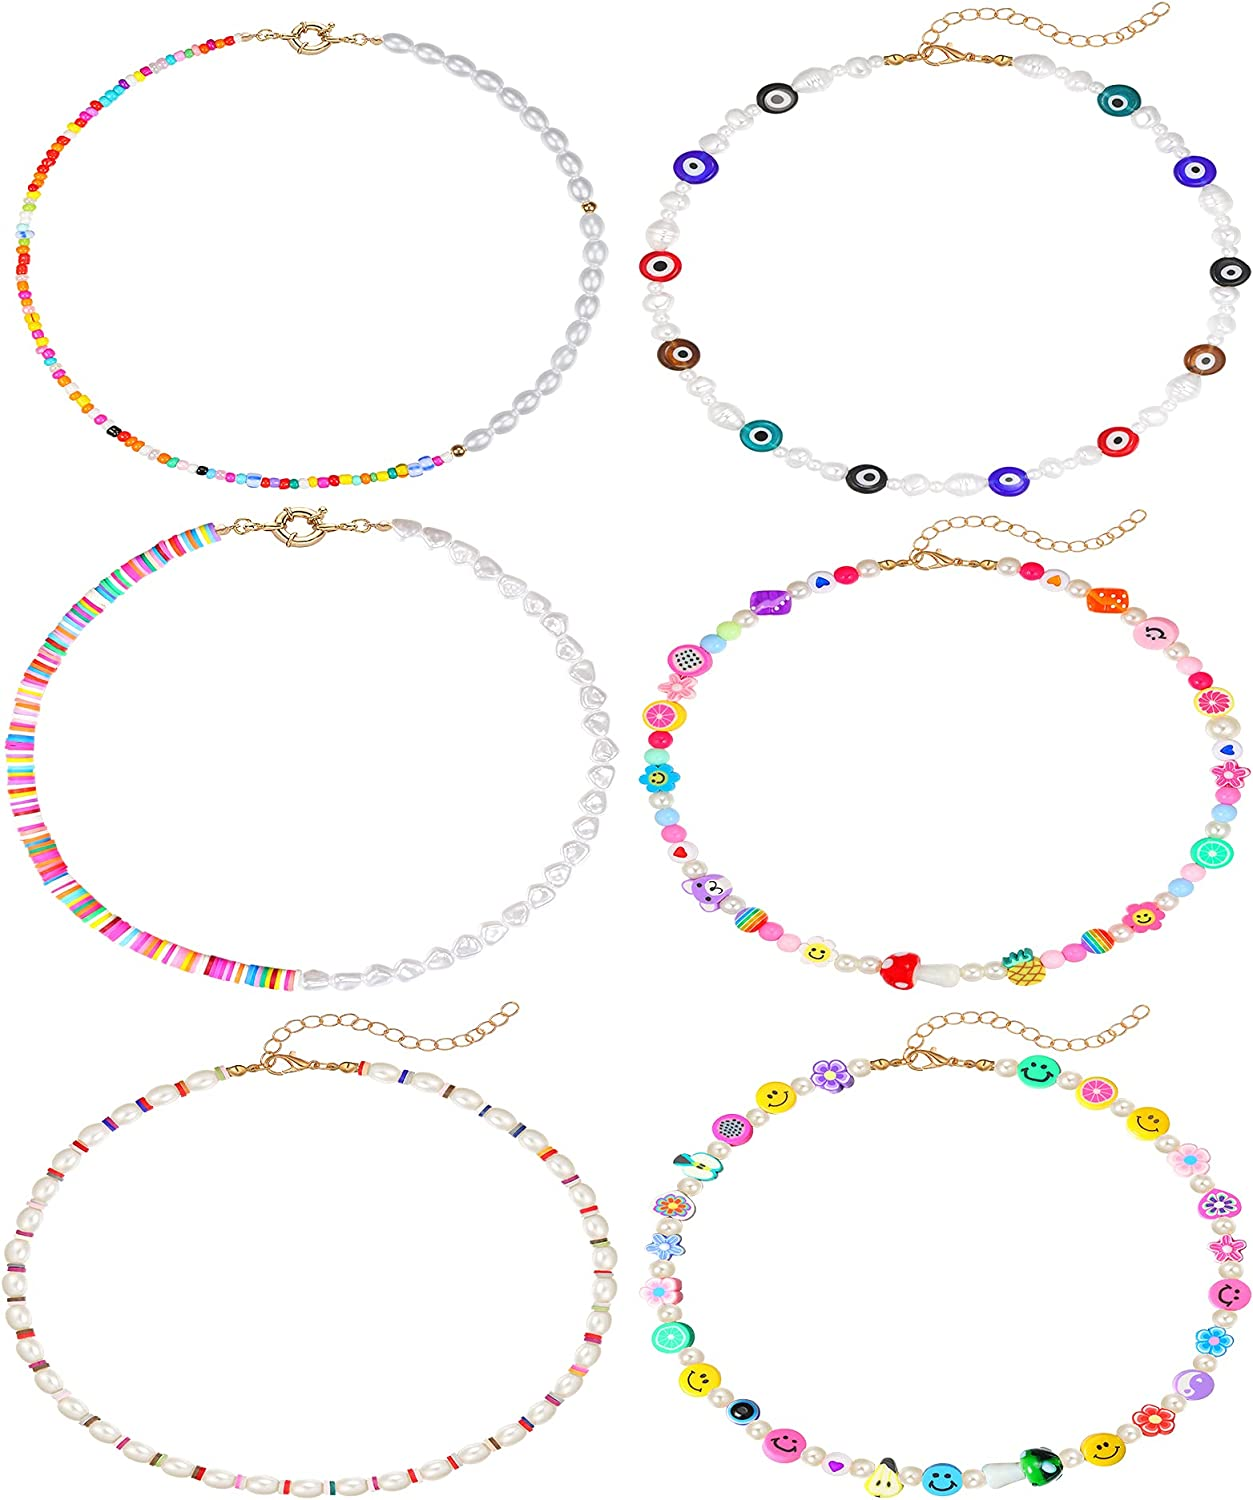 Honsny 6 Pieces Beaded Necklace for Women Smiley Face Evil Eye beaded choker Colorful Y2K Necklaces Jewelry